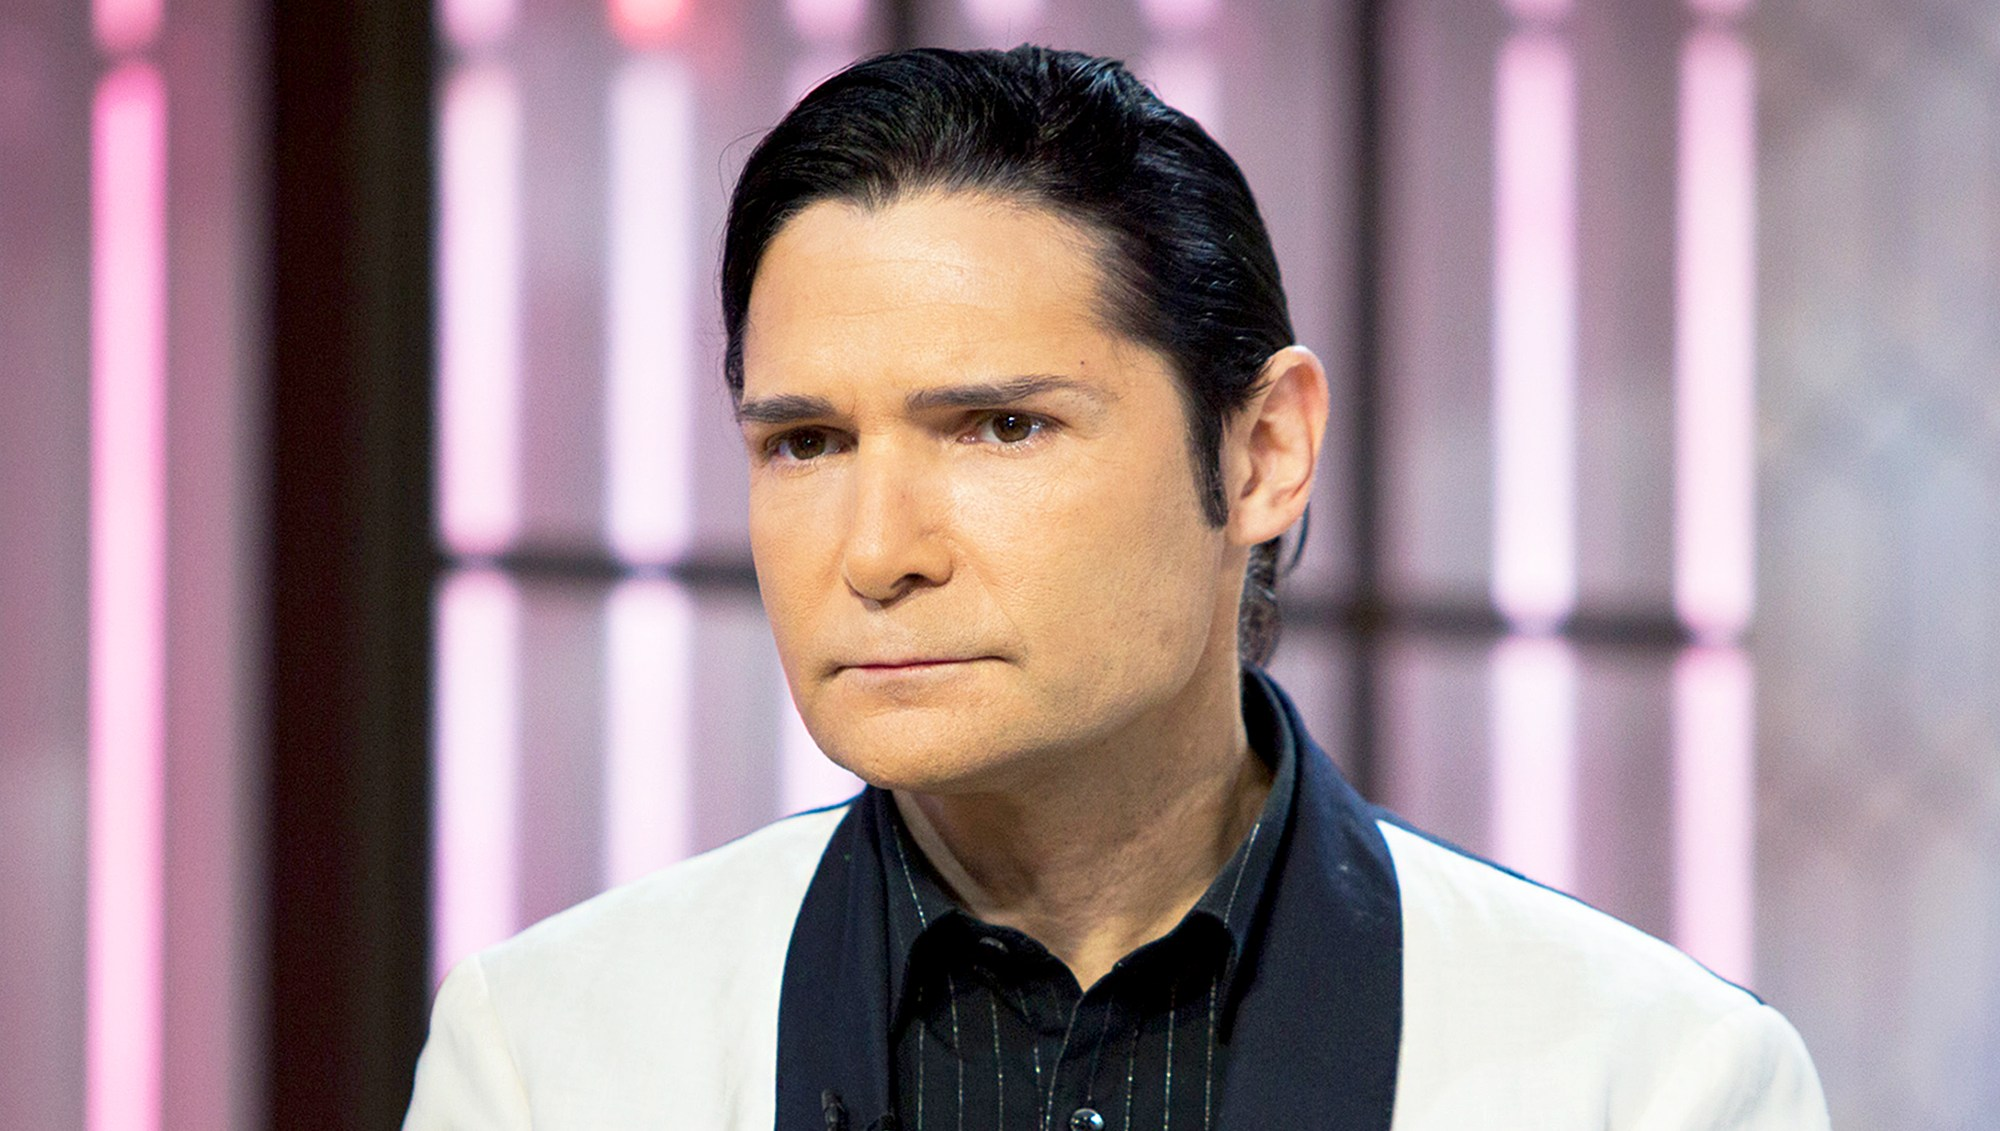 Corey Feldman on 'Today' show